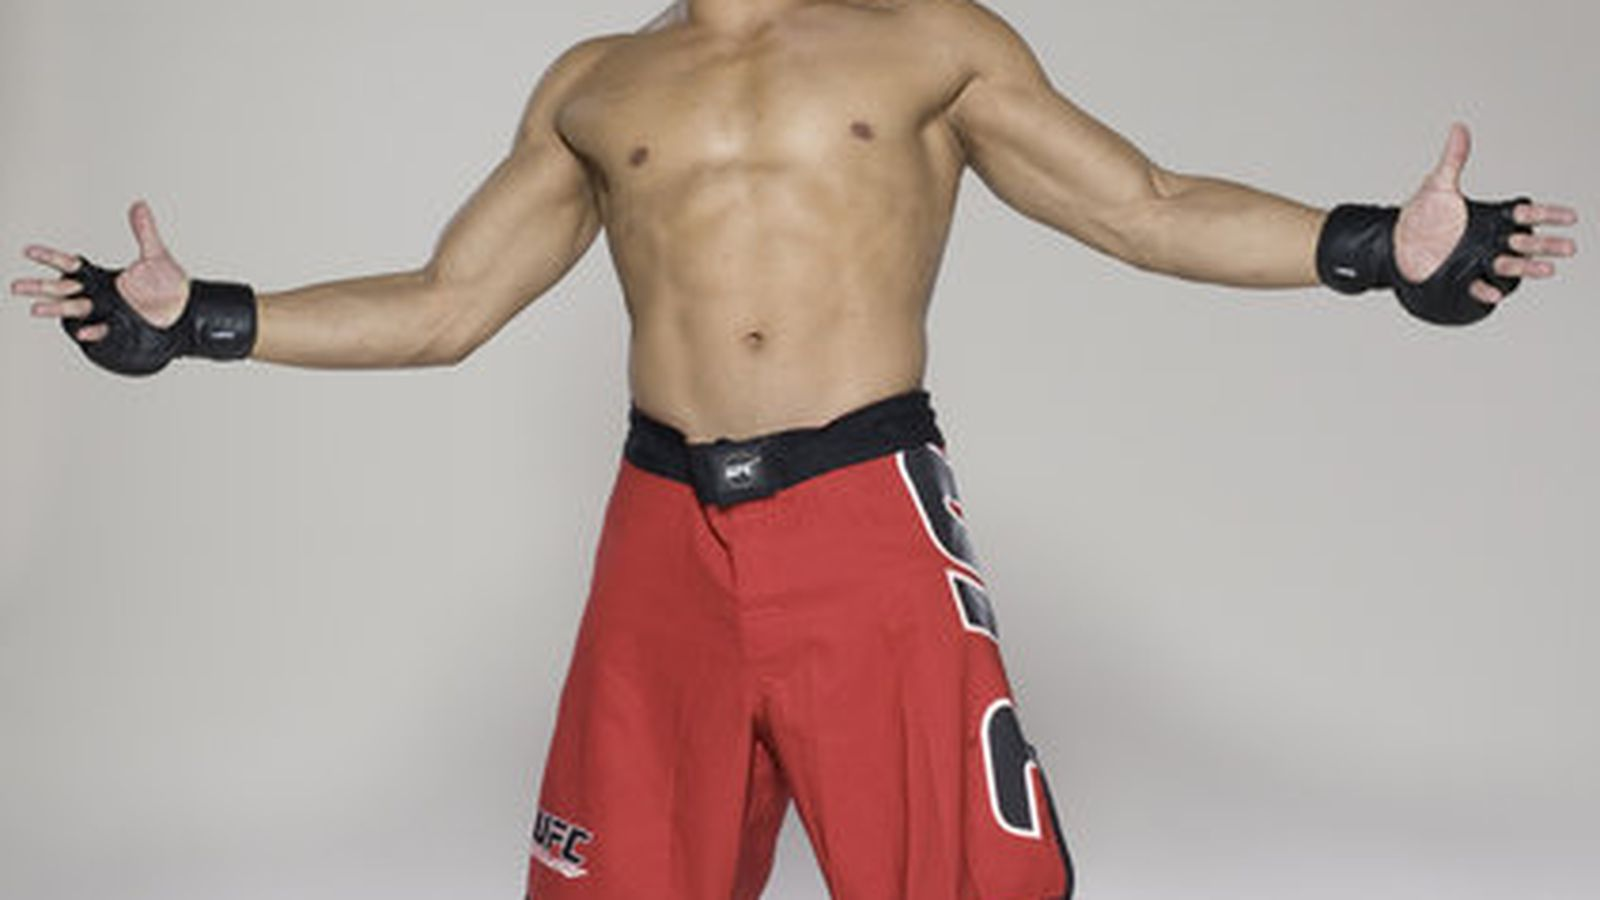 the ultimate fighter competition The ultimate fighter(r) went out on top, as fx's last telecast of the series (4/13/2013) scored fx series highs in total viewers and adults 18-49, while the entire 17th installment was fx's.